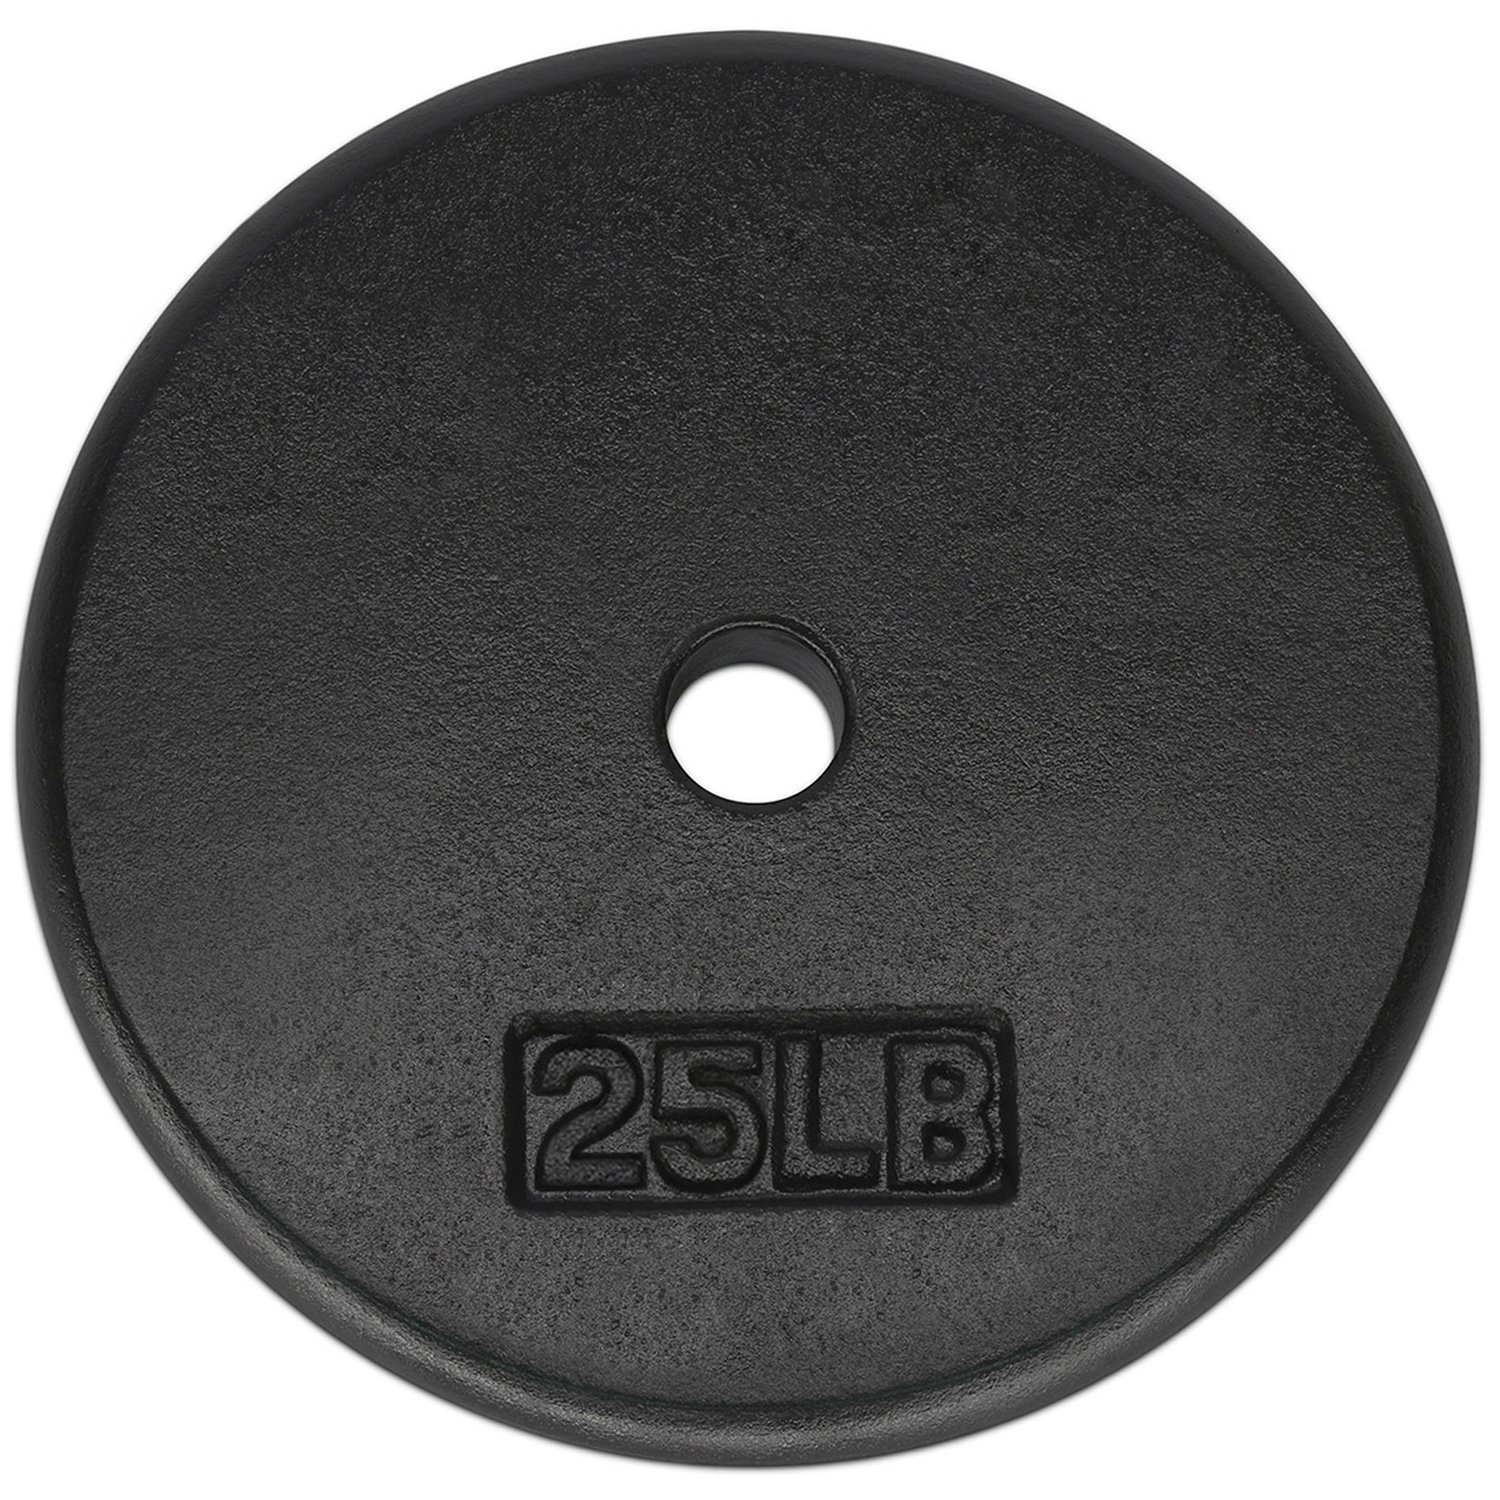 Yes4All 1-inch Cast Iron Weight Plates for Dumbbells – Standard Weight Disc Plates (25 lbs, Single)